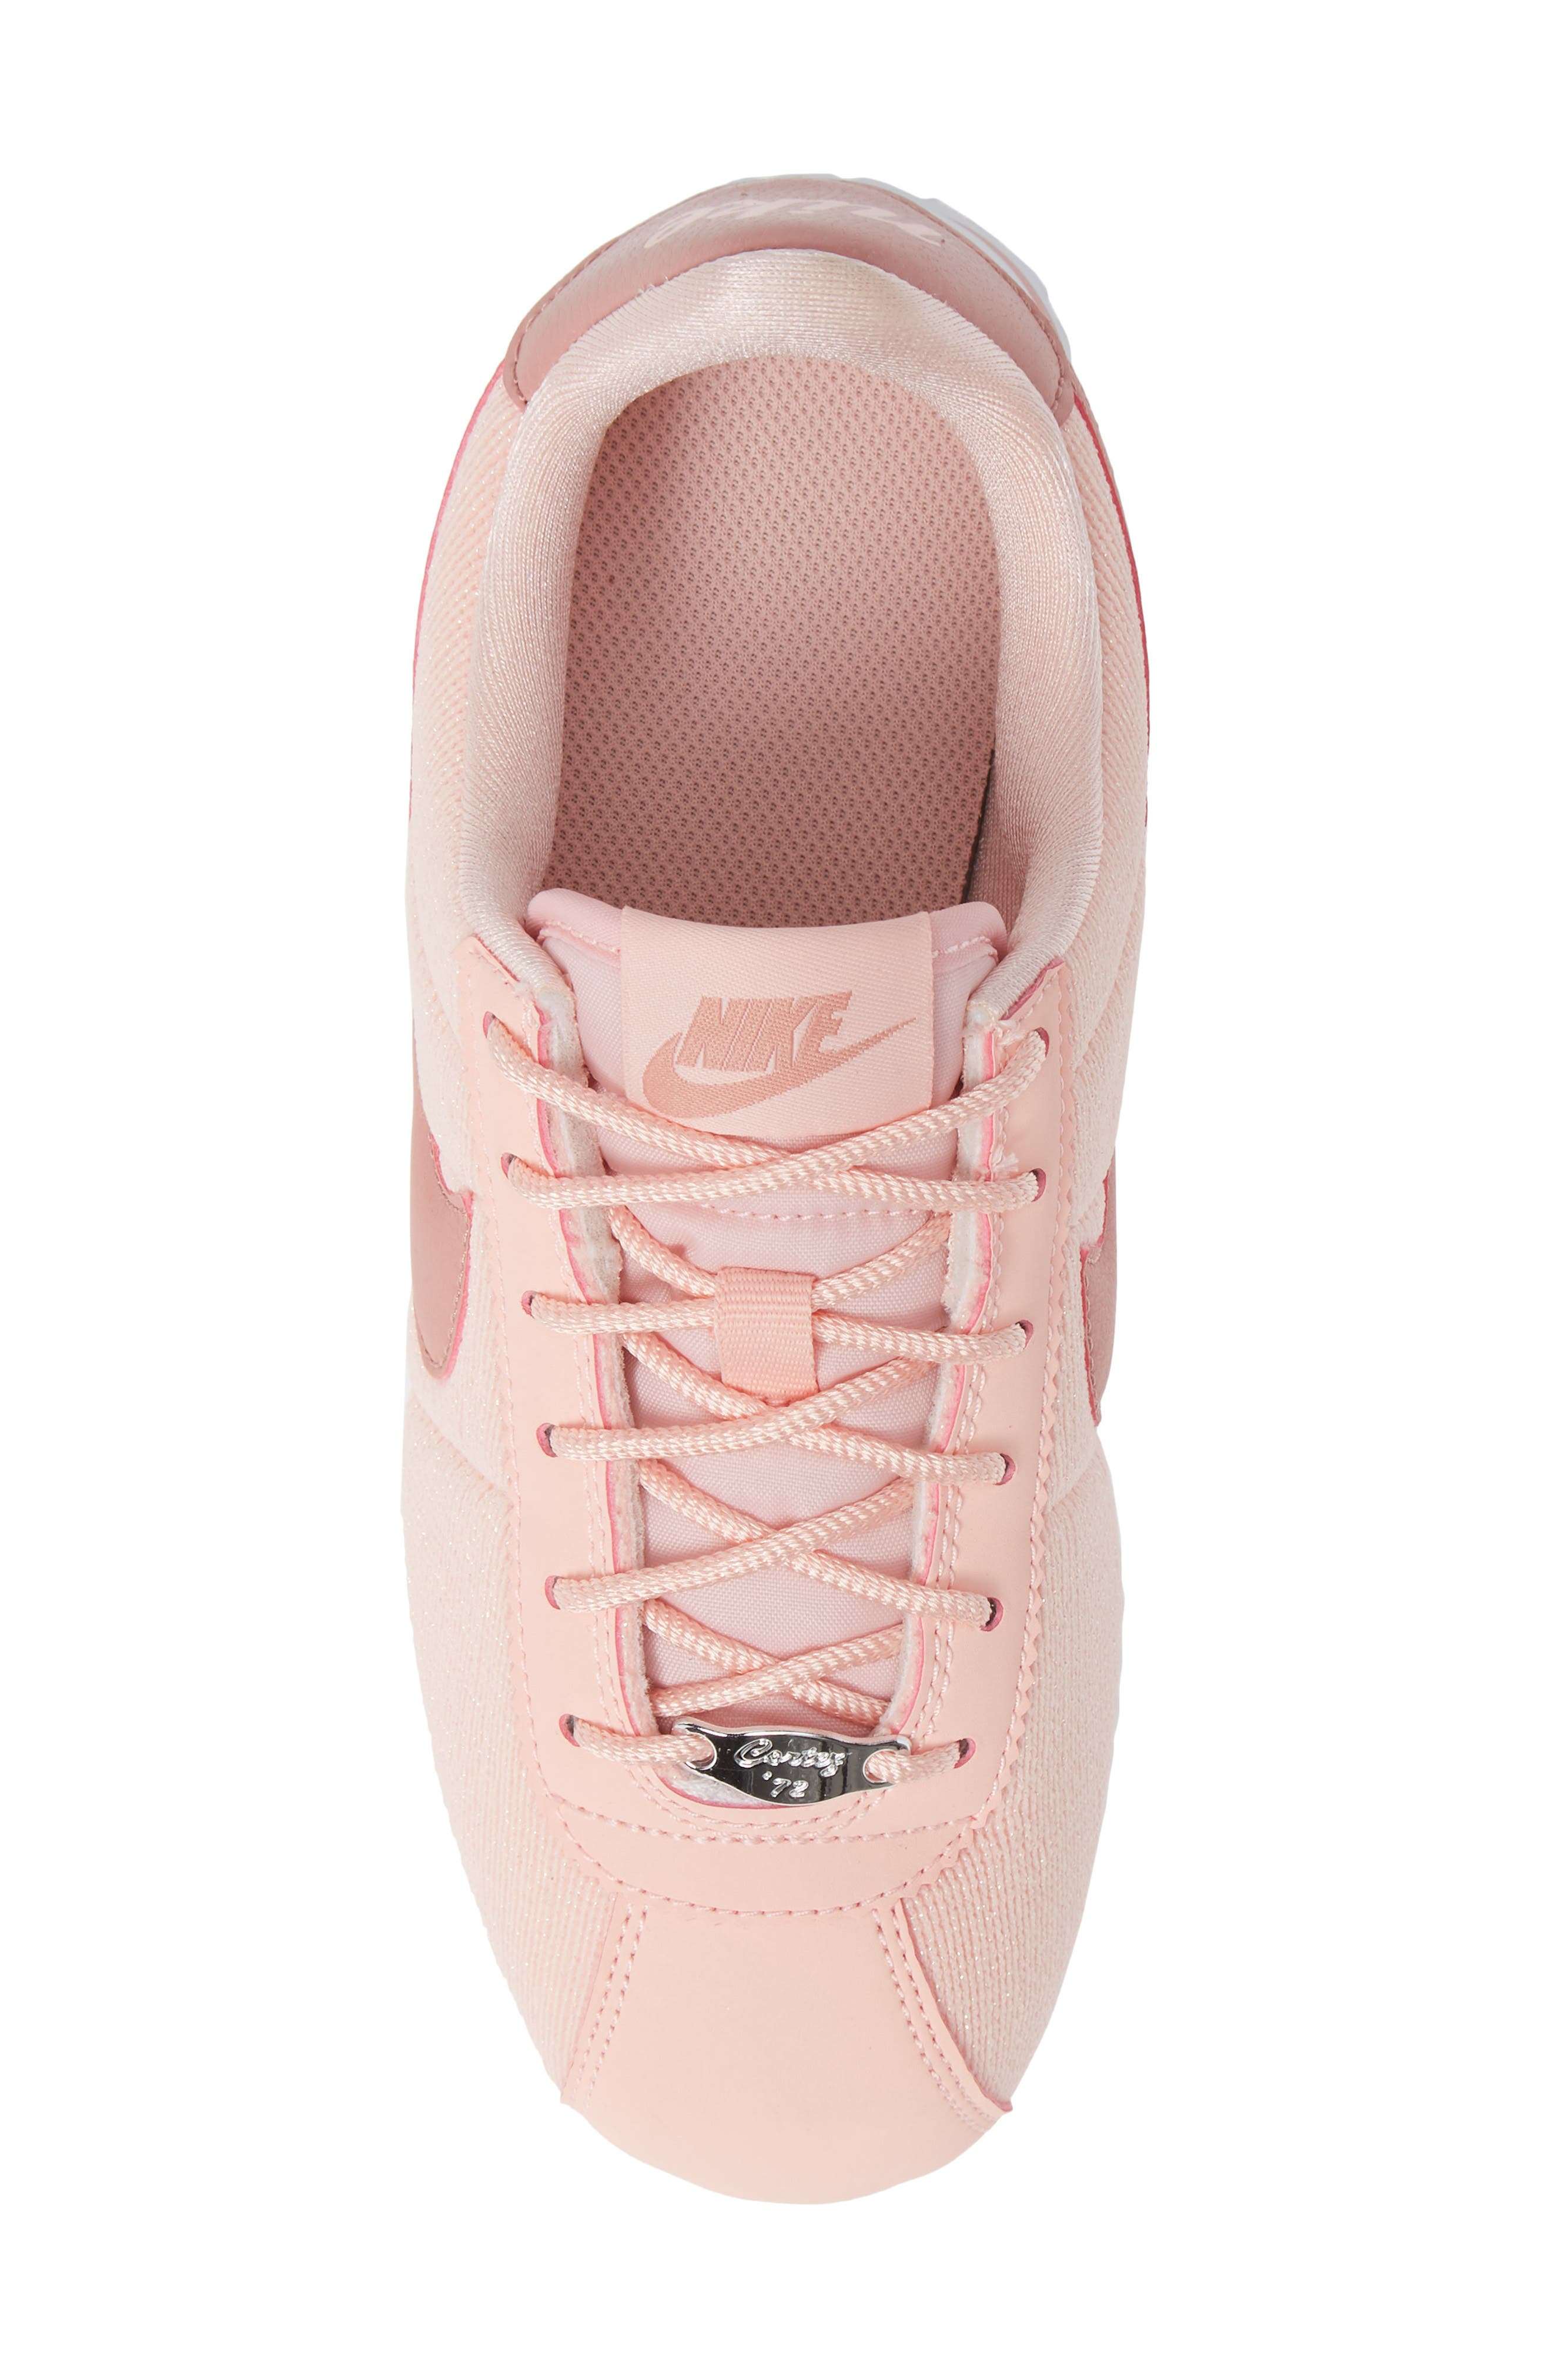 Cortez Basic TXT SE Sneaker,                             Alternate thumbnail 5, color,                             STORM PINK/ RUST PINK/ WHITE